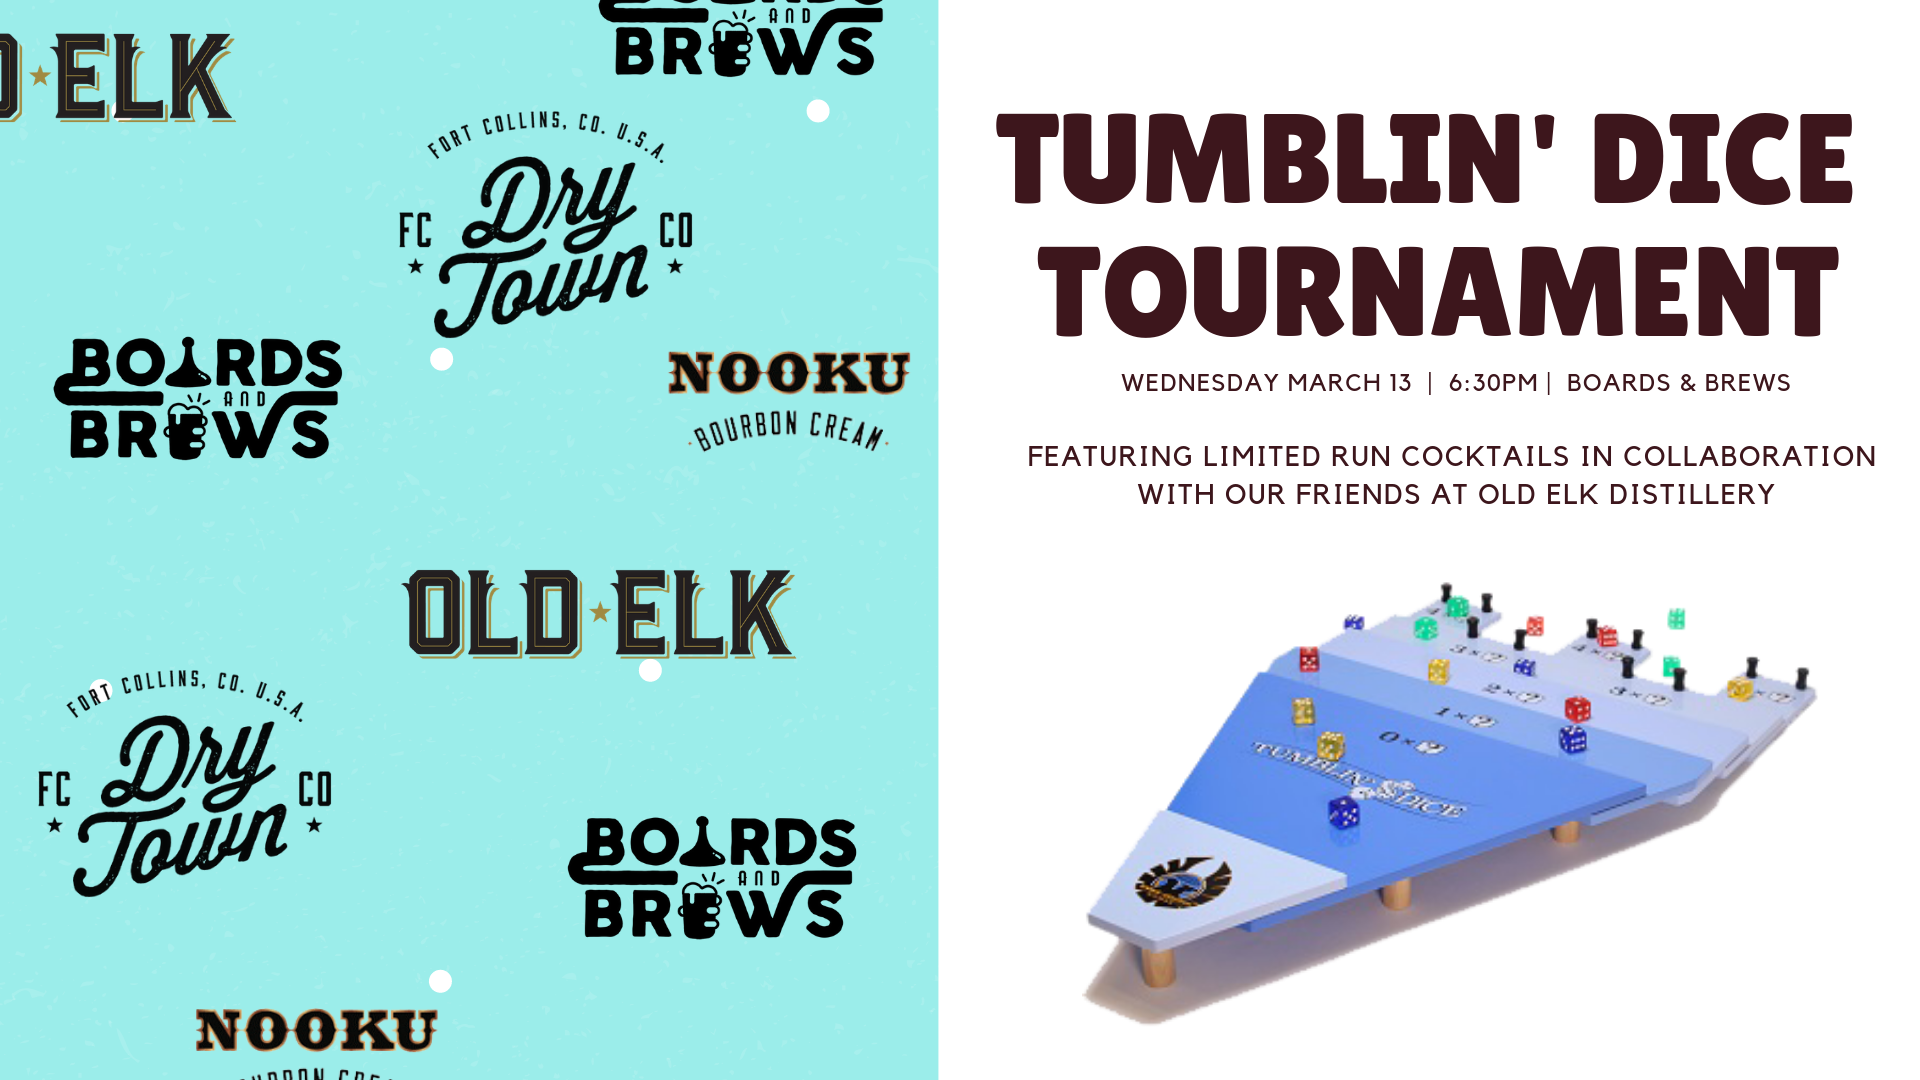 Tumblin dice tourney cover photo